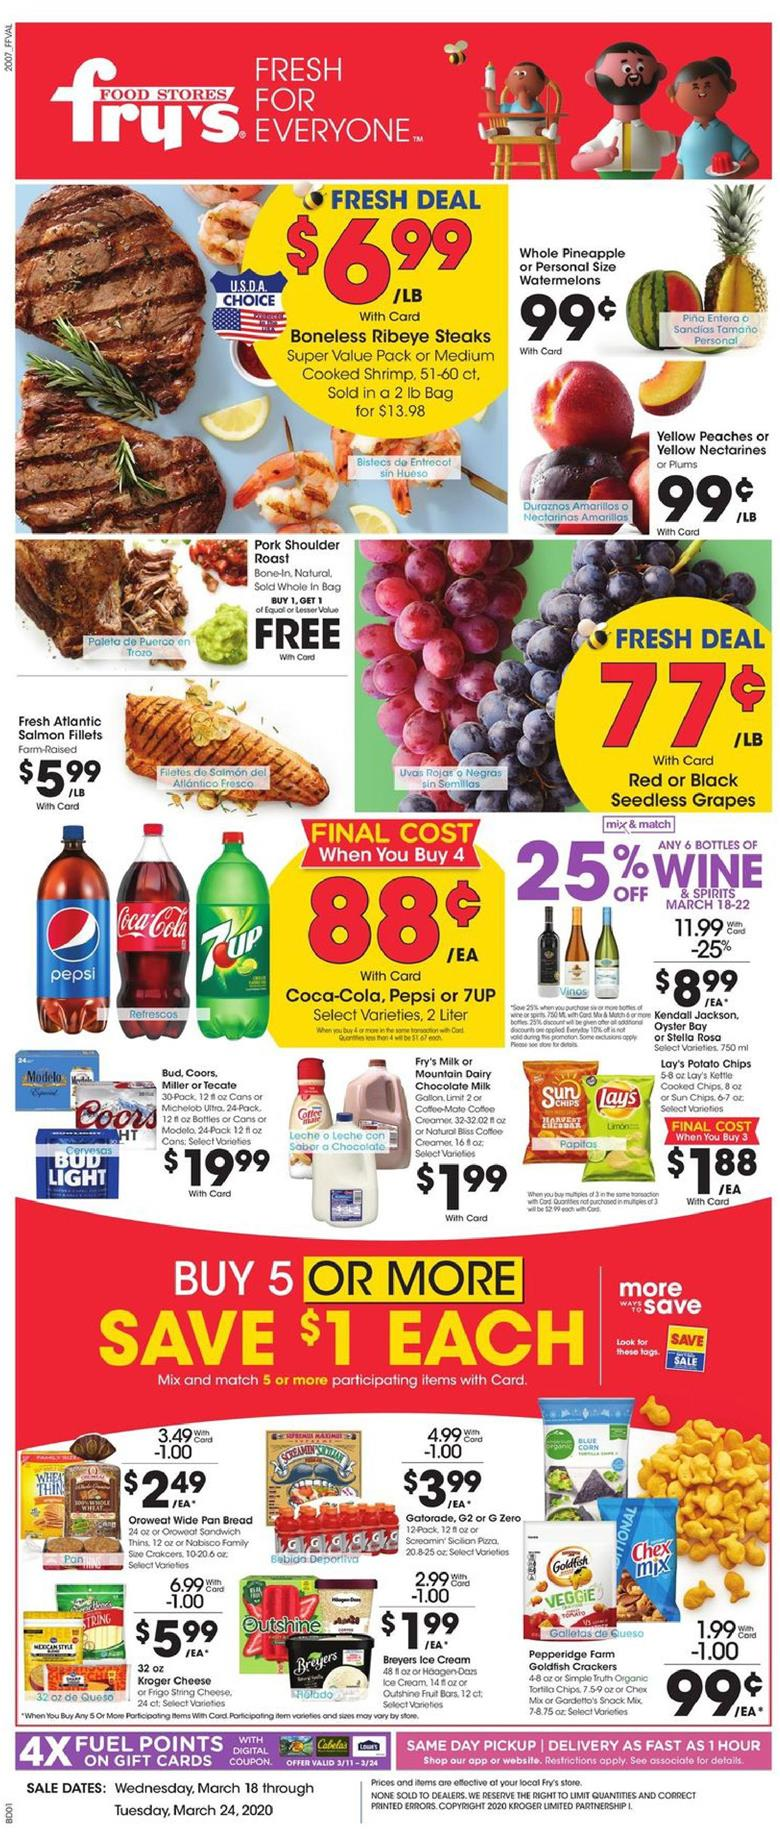 frys march weekly ad valid from march 18 24 2020